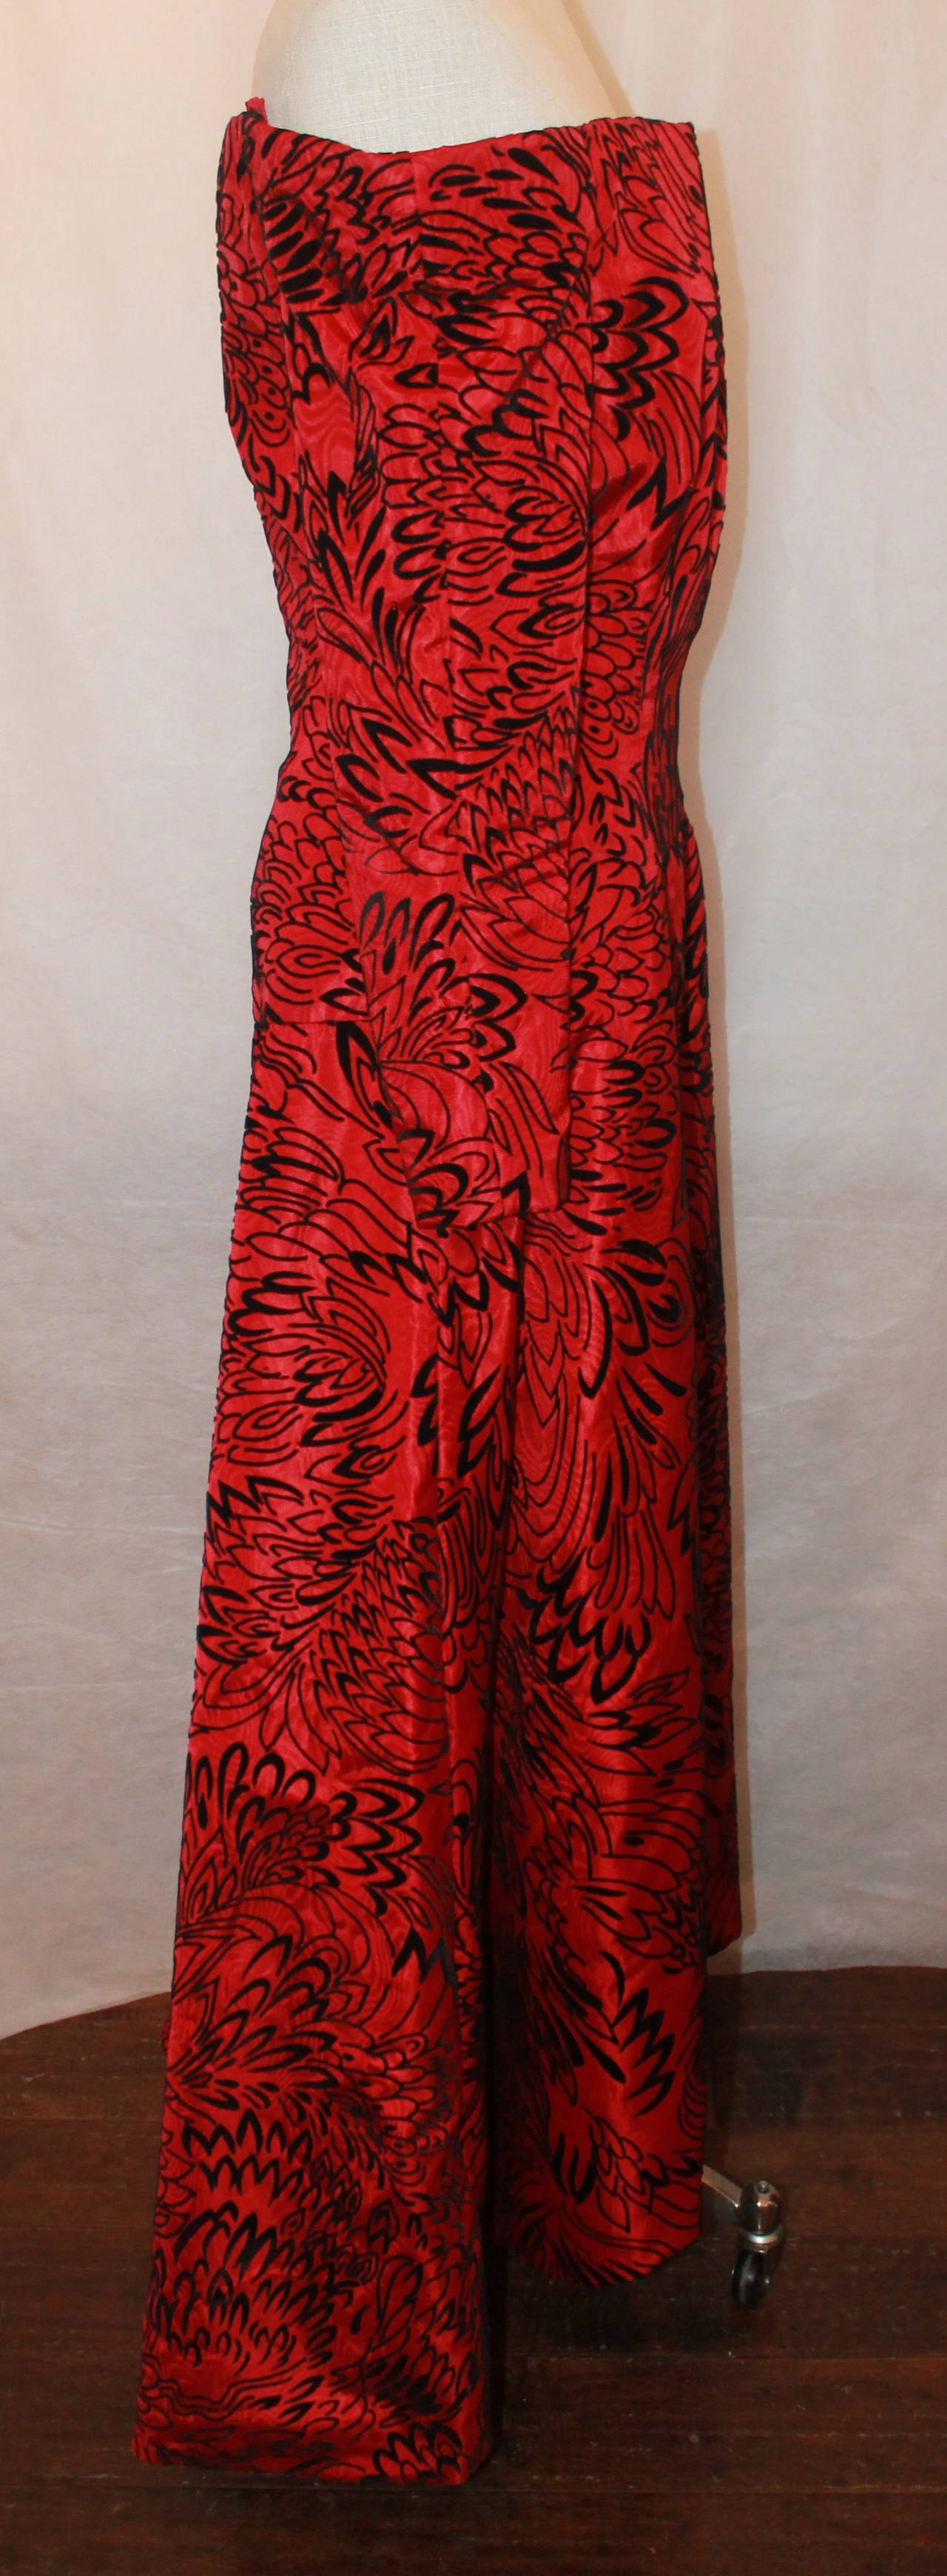 Scaasi 1990's Vintage Red & Black Long Sleeve Gown - 8 3